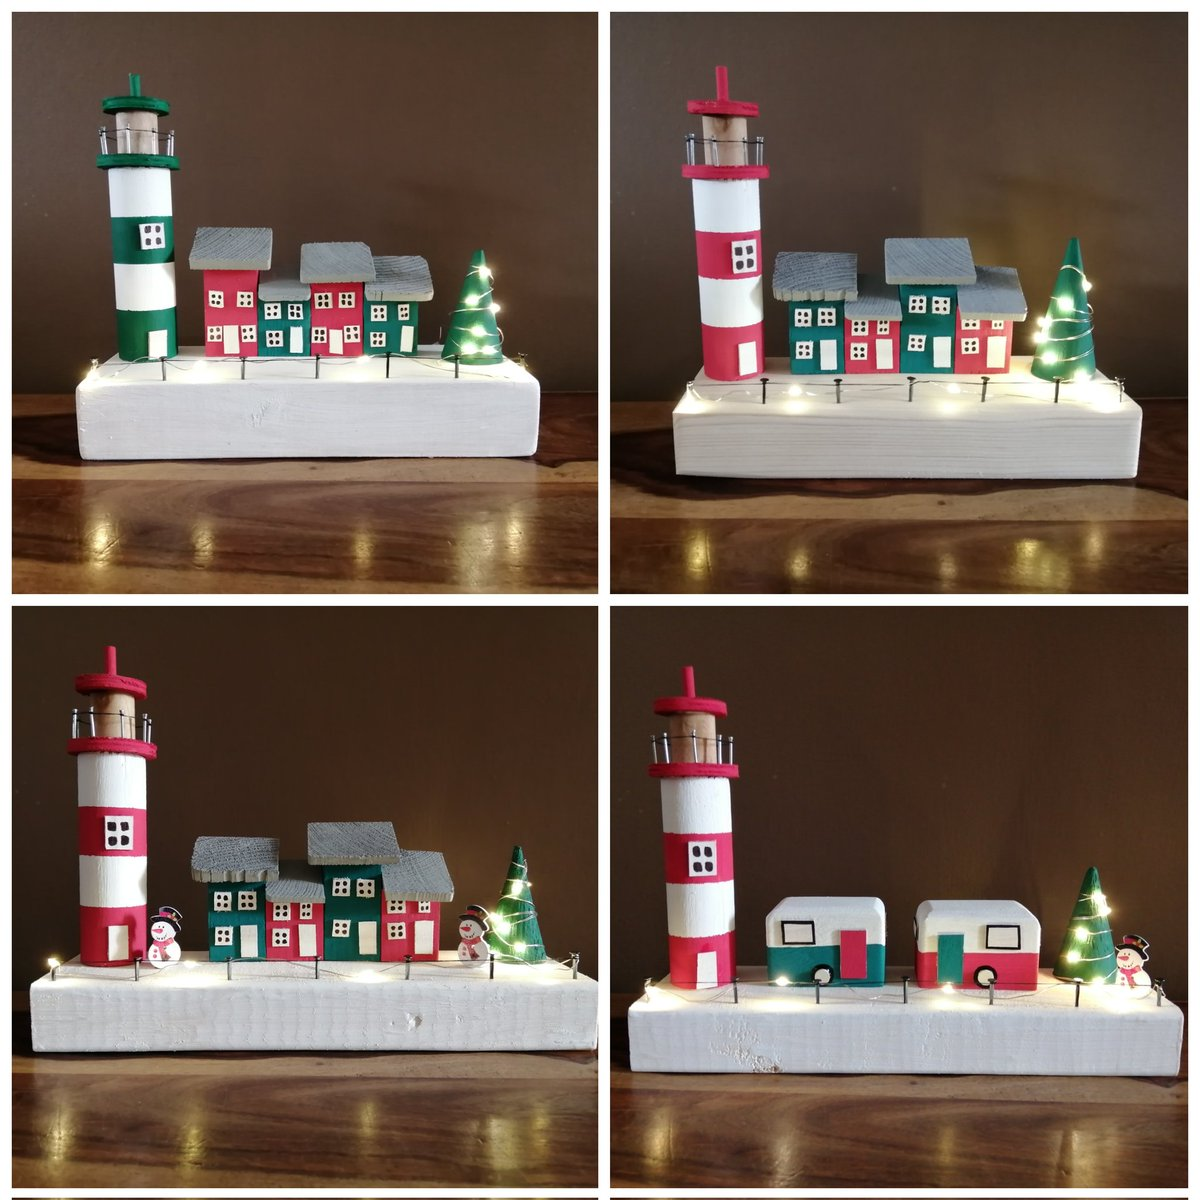 RT @BevBeach: Christmas Scenes £20 + PP can be done in any colour scheme #htlmphour #htlmp https://t.co/potI31K0sN